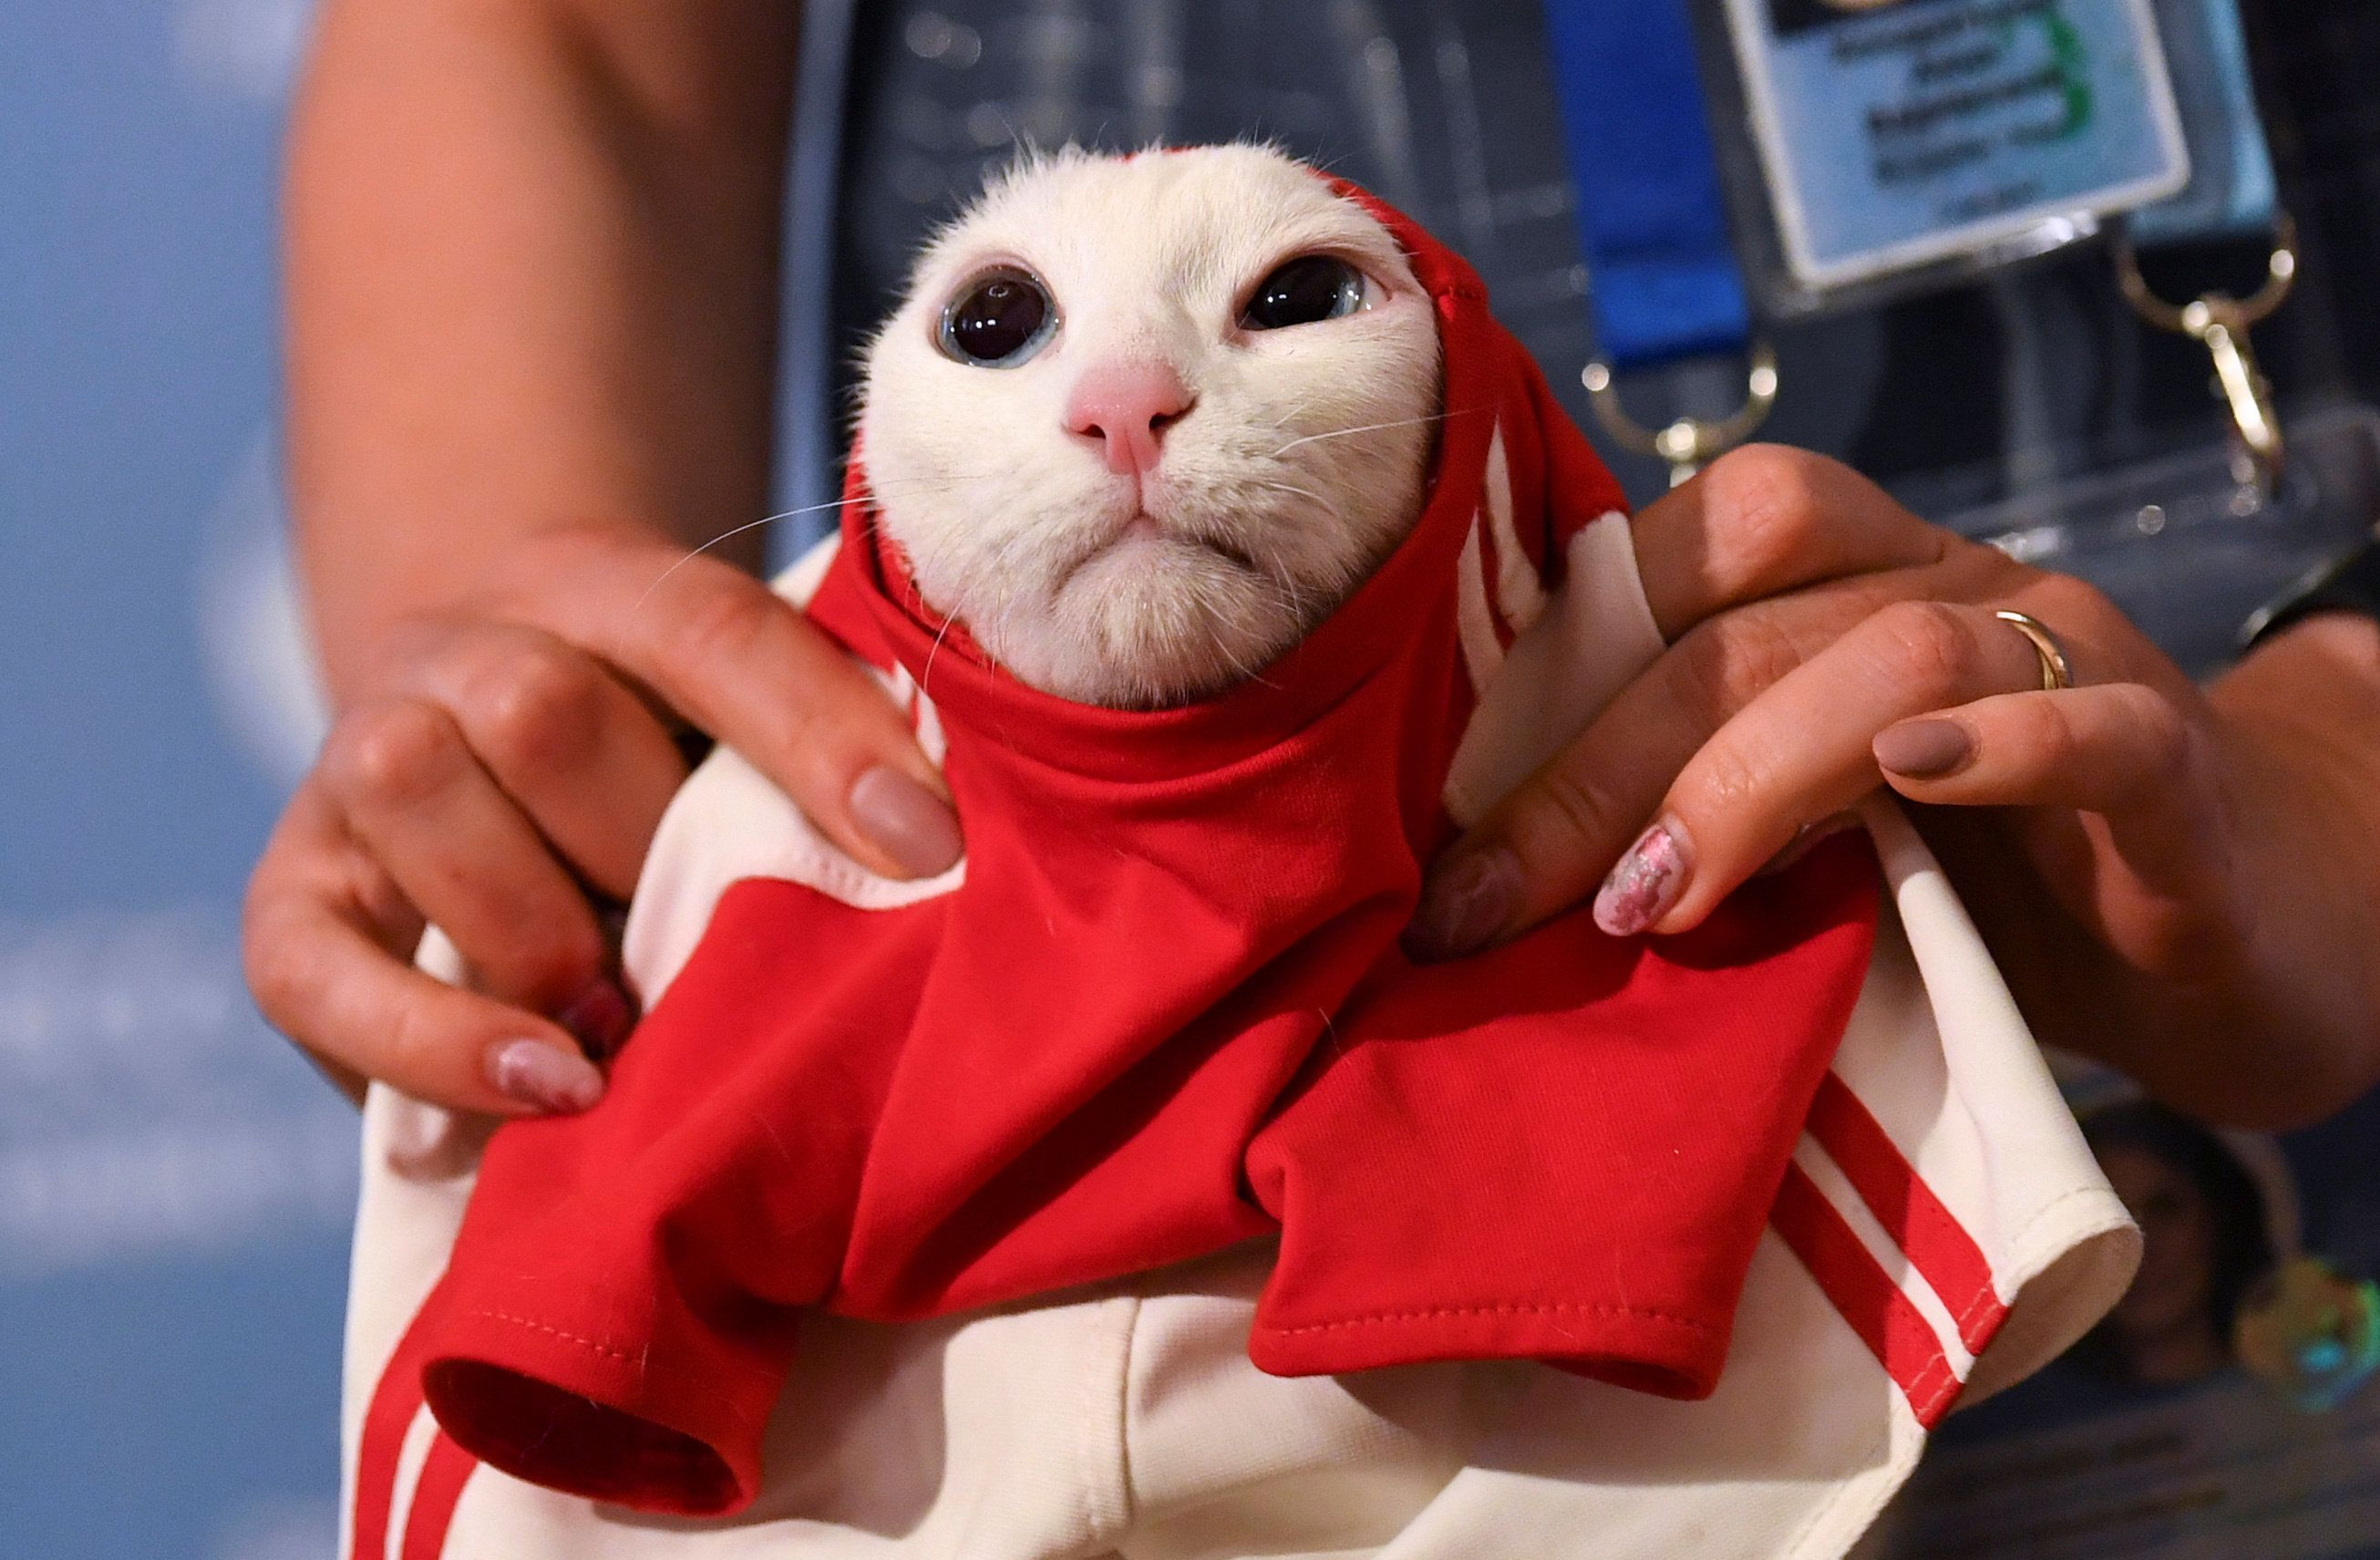 A participant dresses Achilles the cat, one of the State Hermitage Museum mice hunters, which attempts to predict the result of the opening match of the 2018 FIFA World Cup between Russia and Saudi Arabia during an event in Saint Petersburg, Russia June 13, 2018. REUTERS/Dylan Martinez     TPX IMAGES OF THE DAY